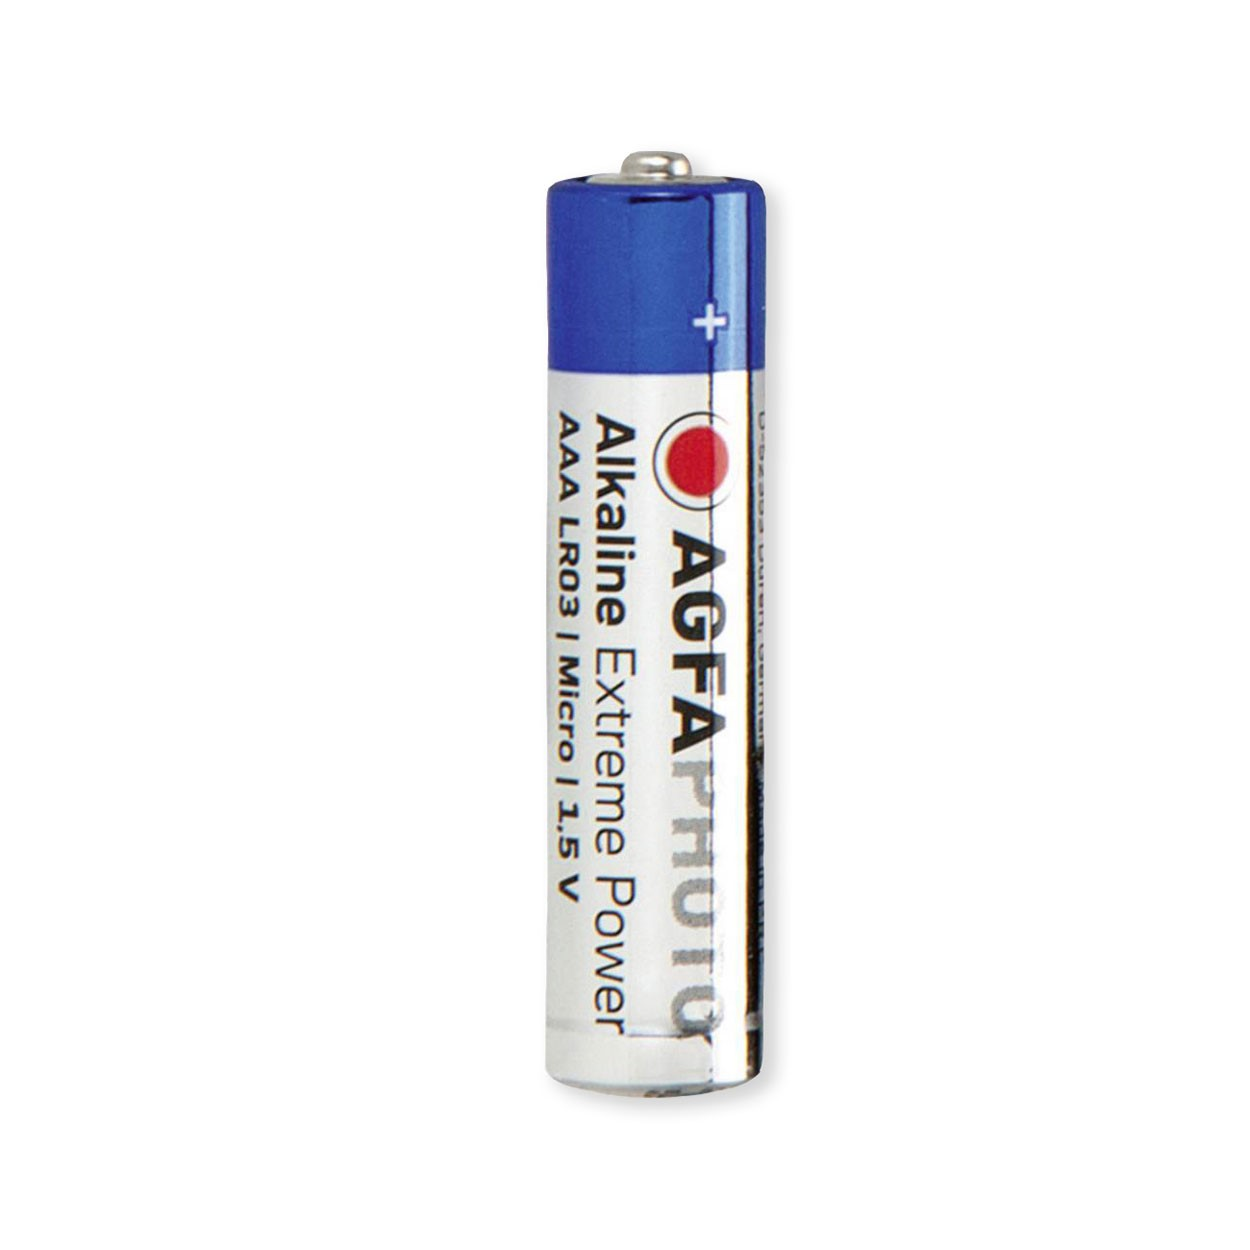 Agfa Photo Alkaline Batterie Micro, AAA, LR03, 1,5 Volt